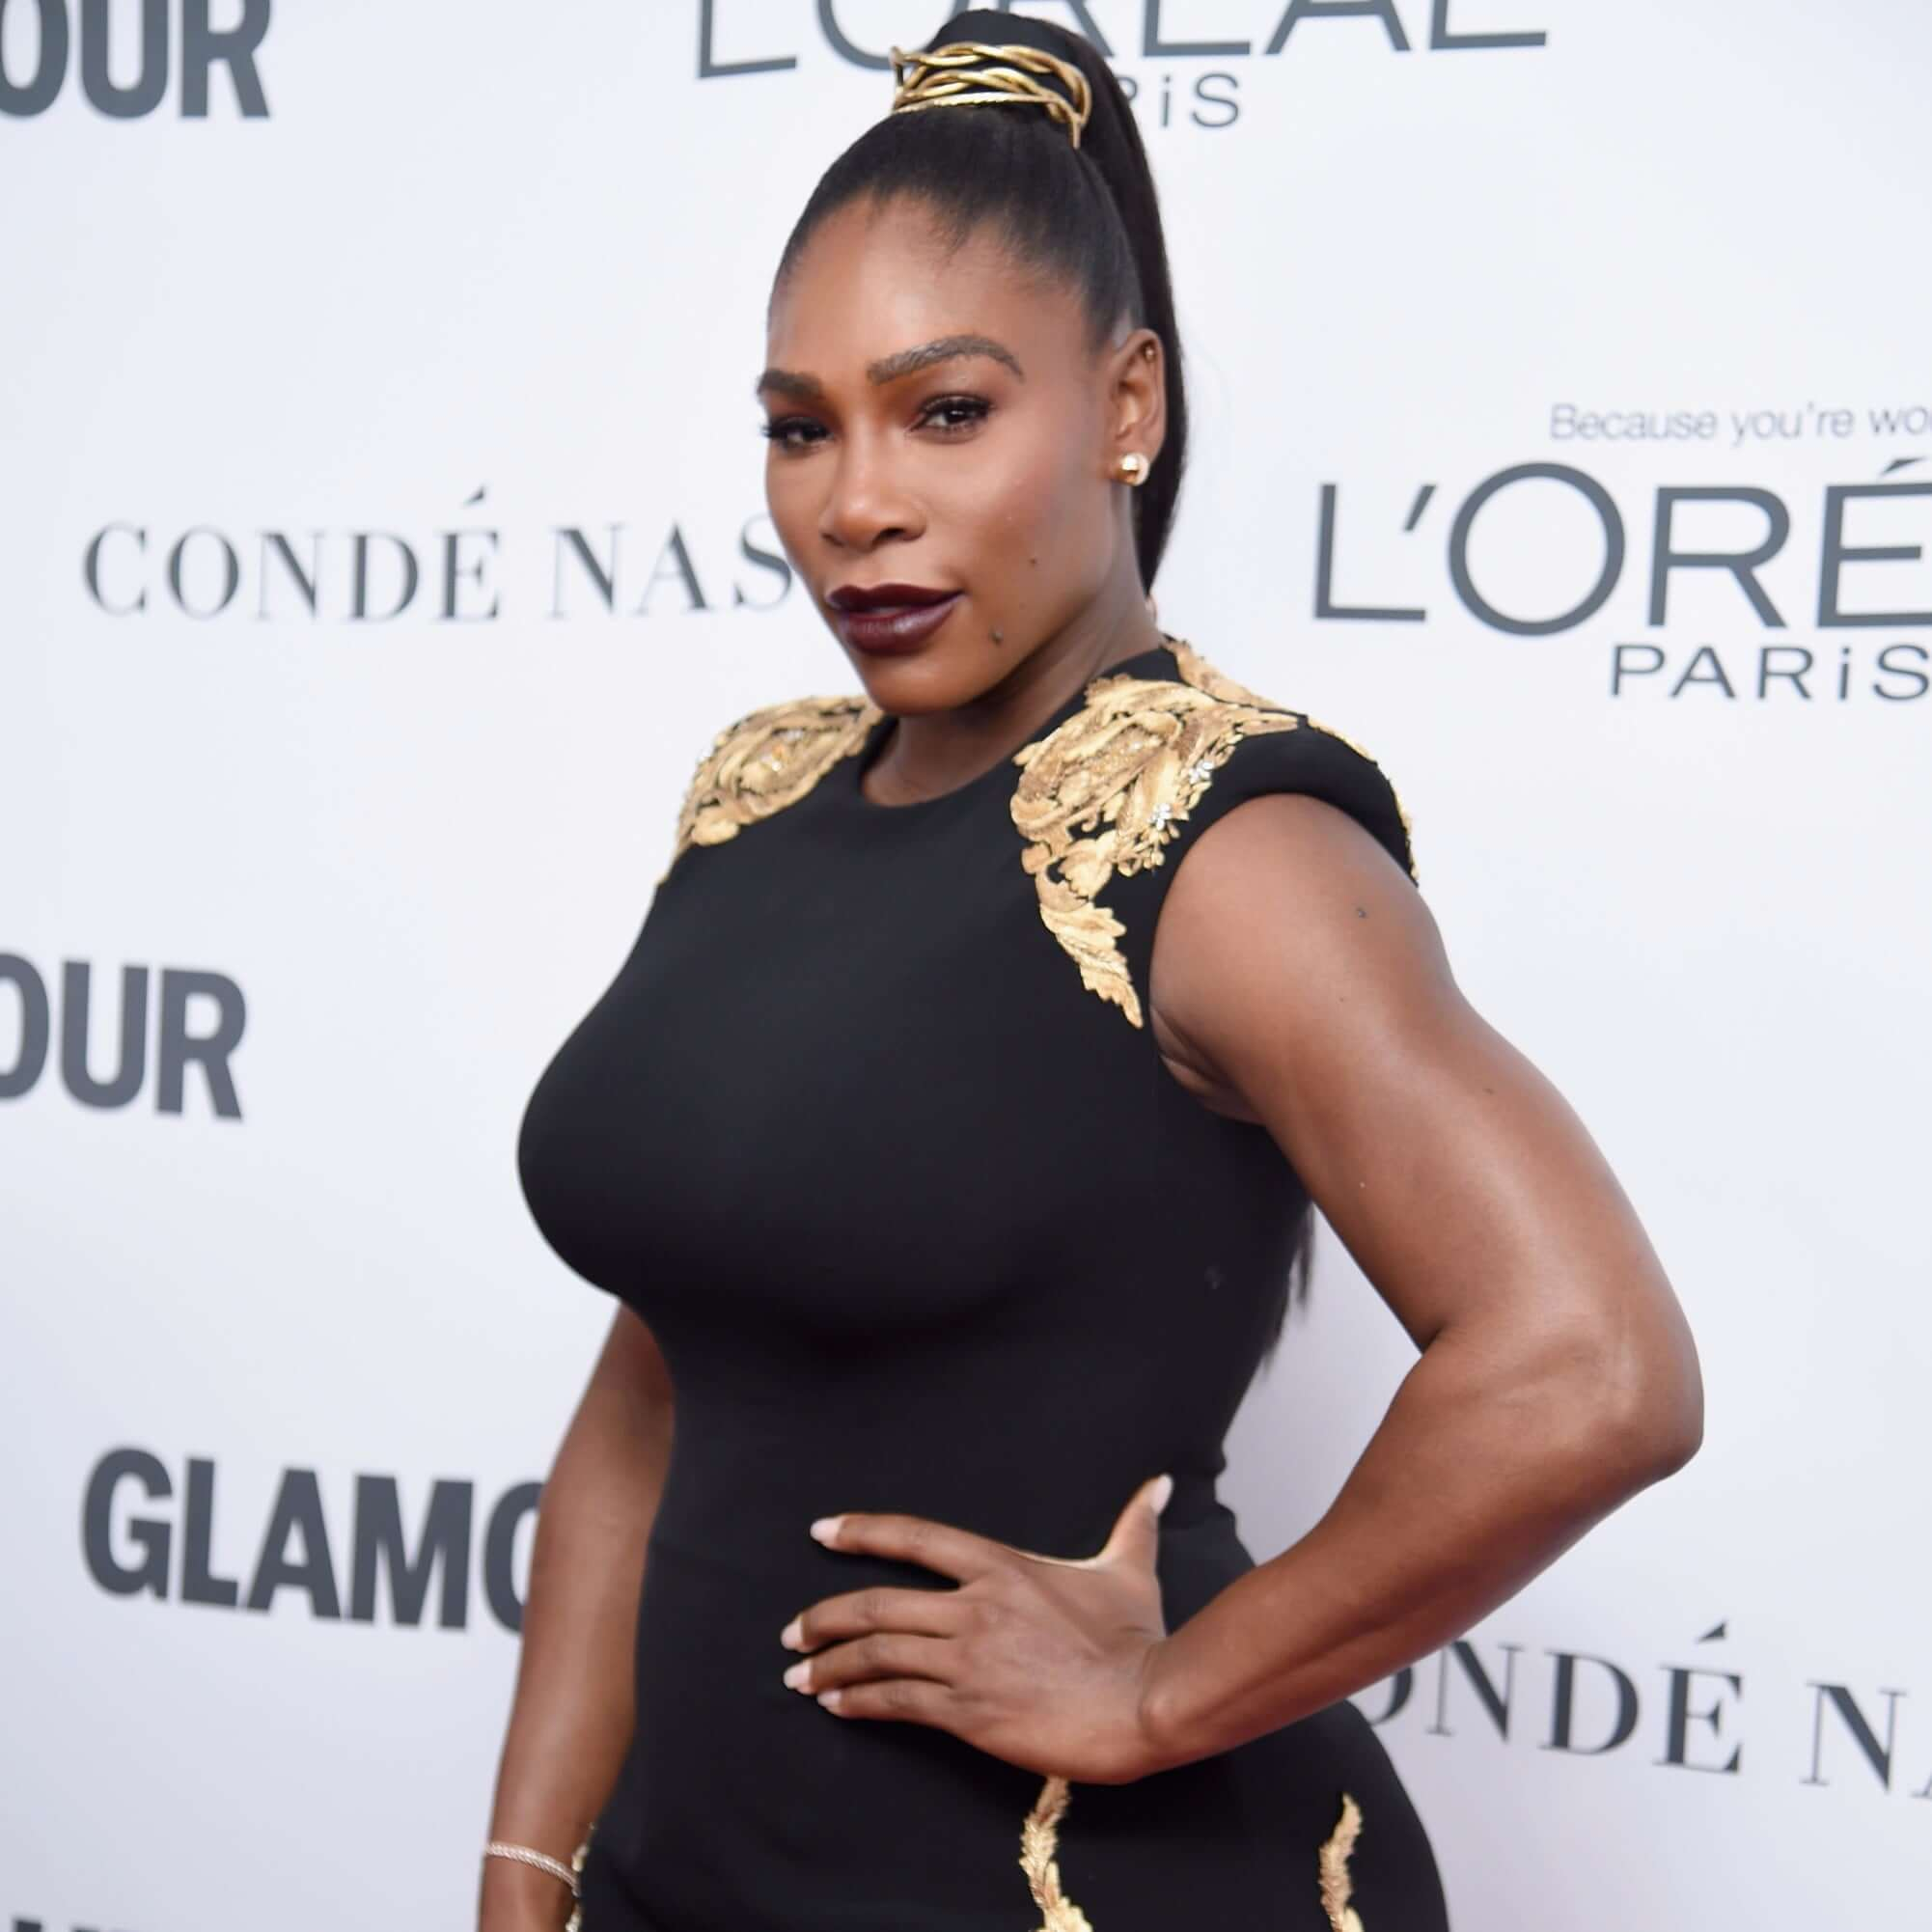 Serena Williams hot busty pics